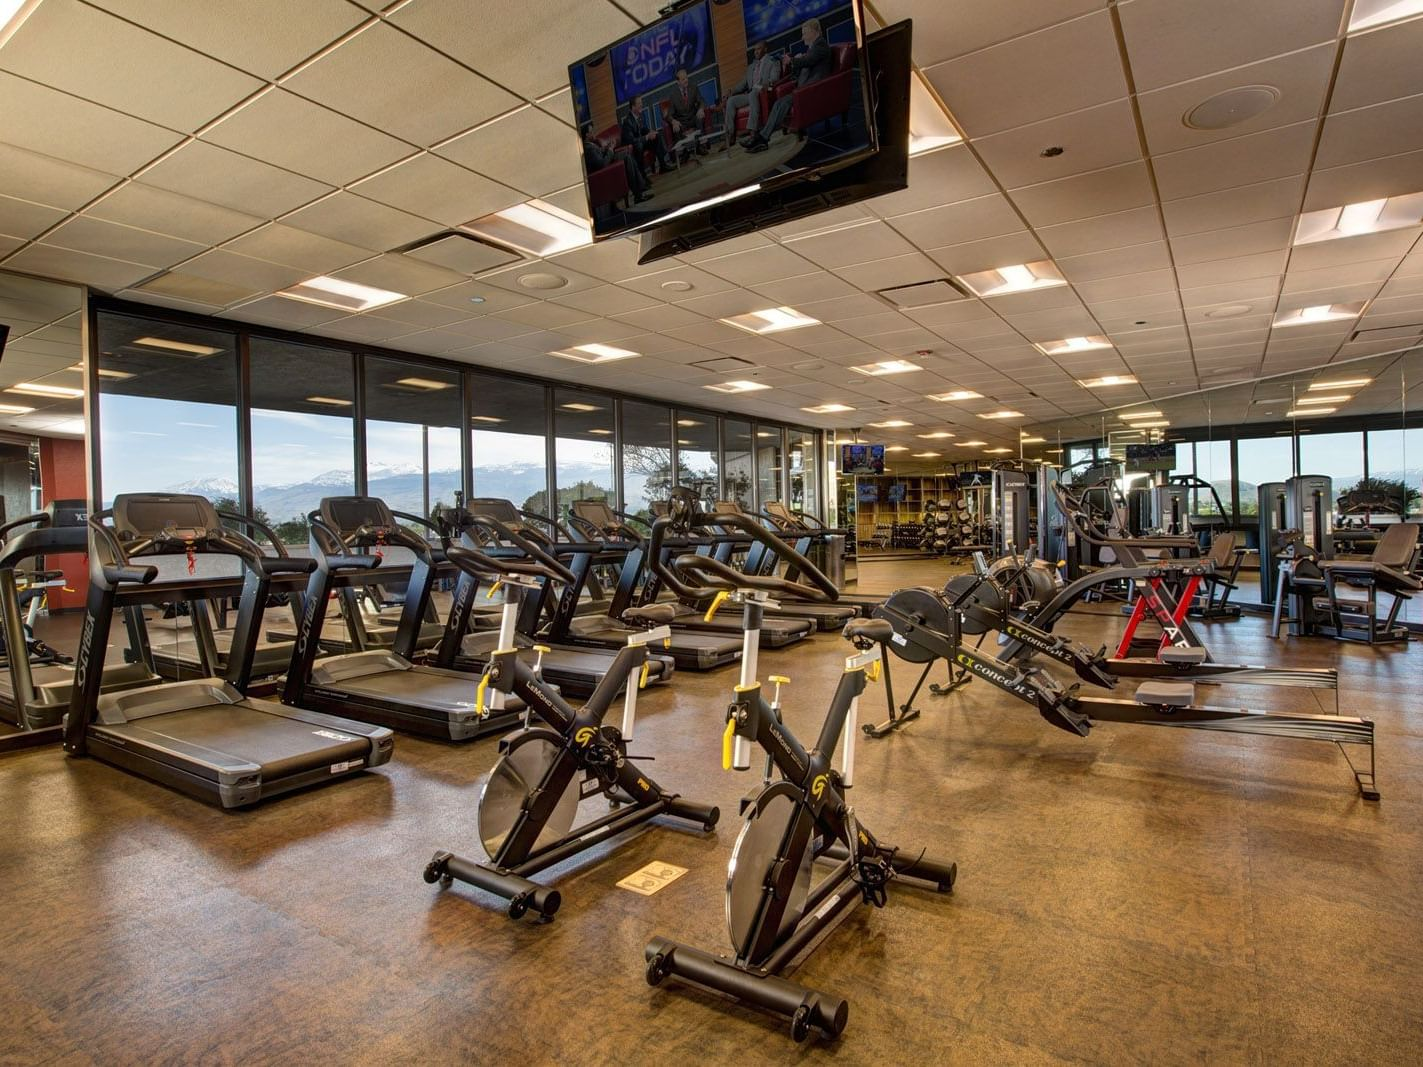 rows of treadmills and bikes in a gym